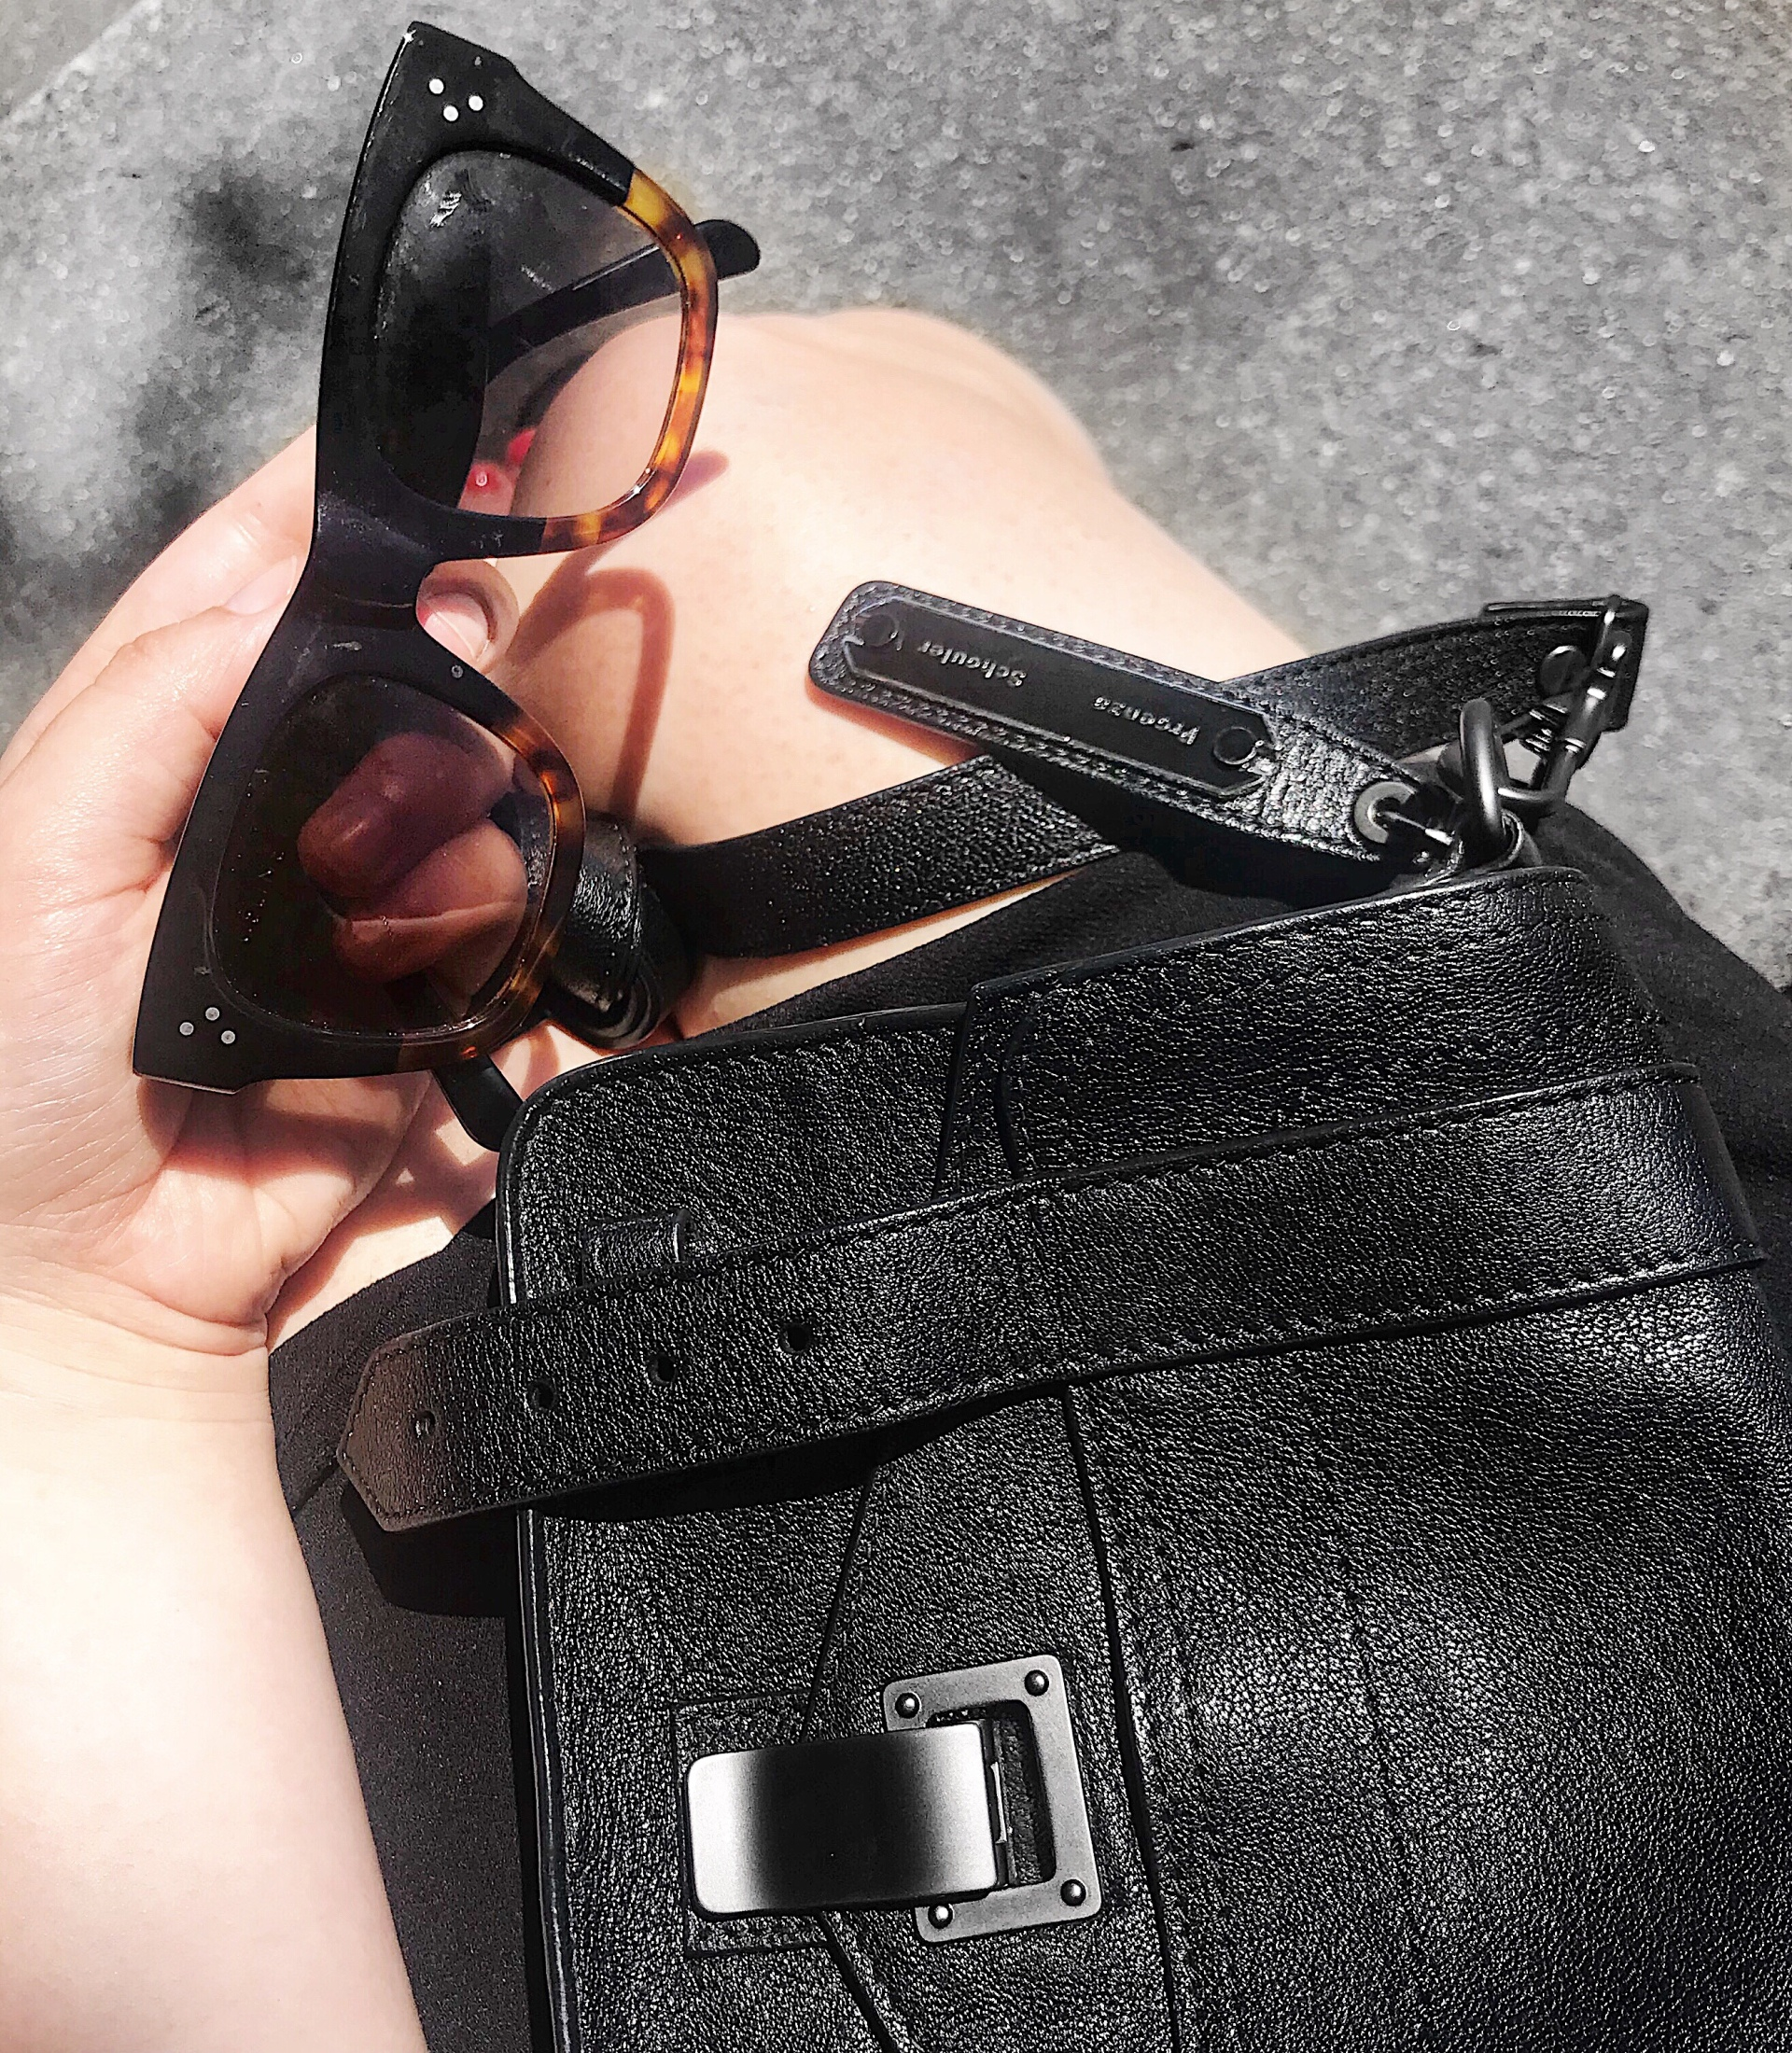 Proenza Schouler PS1 Tiny Bag and Céline Audrey sunglasses